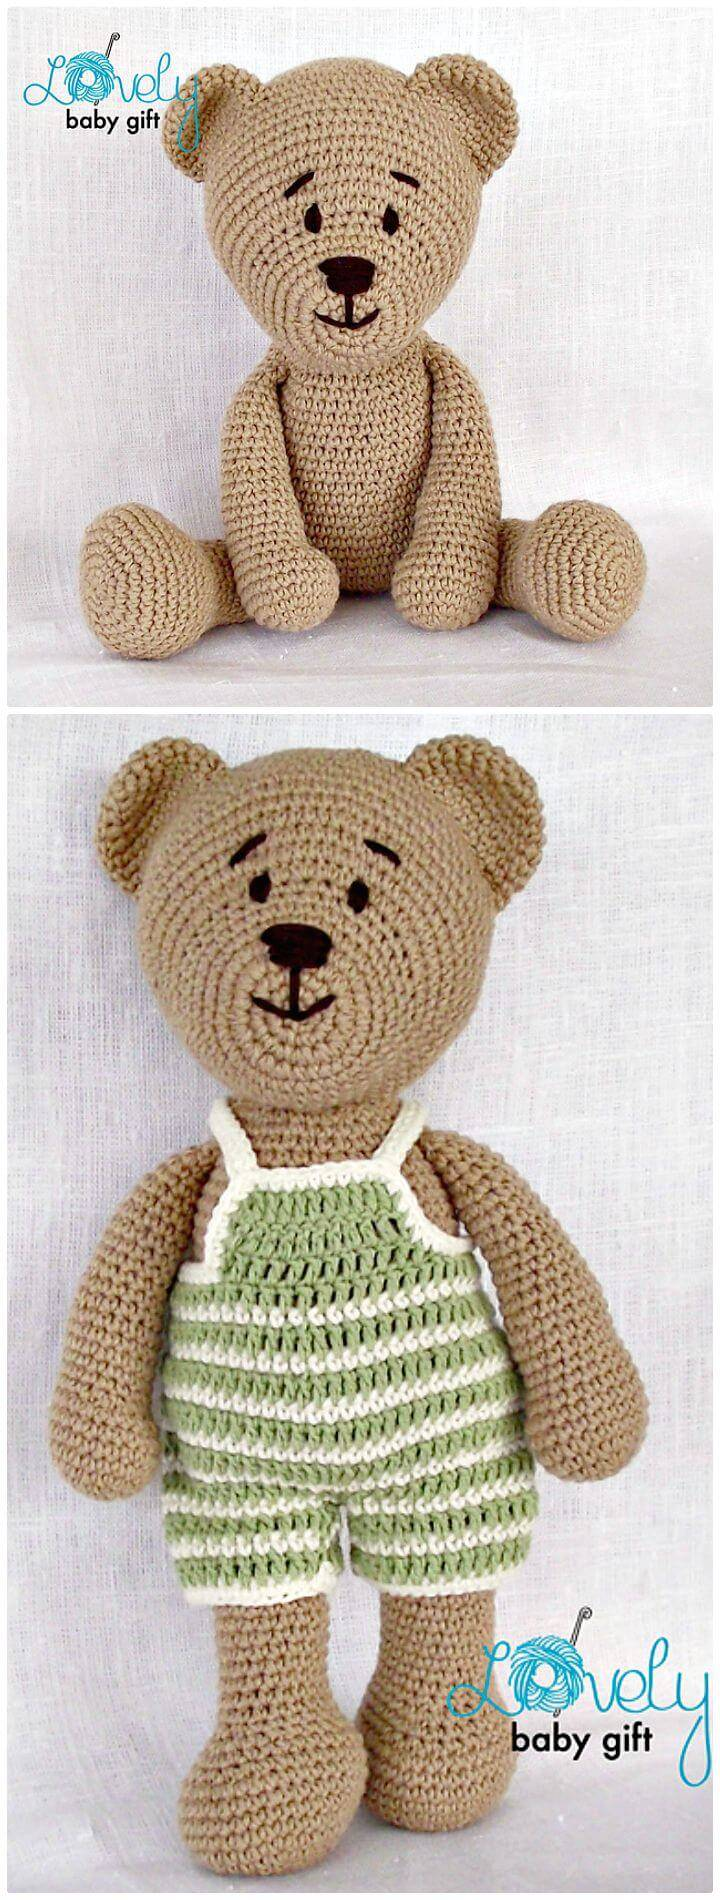 How To Crochet Teddy Bear - Free Pattern